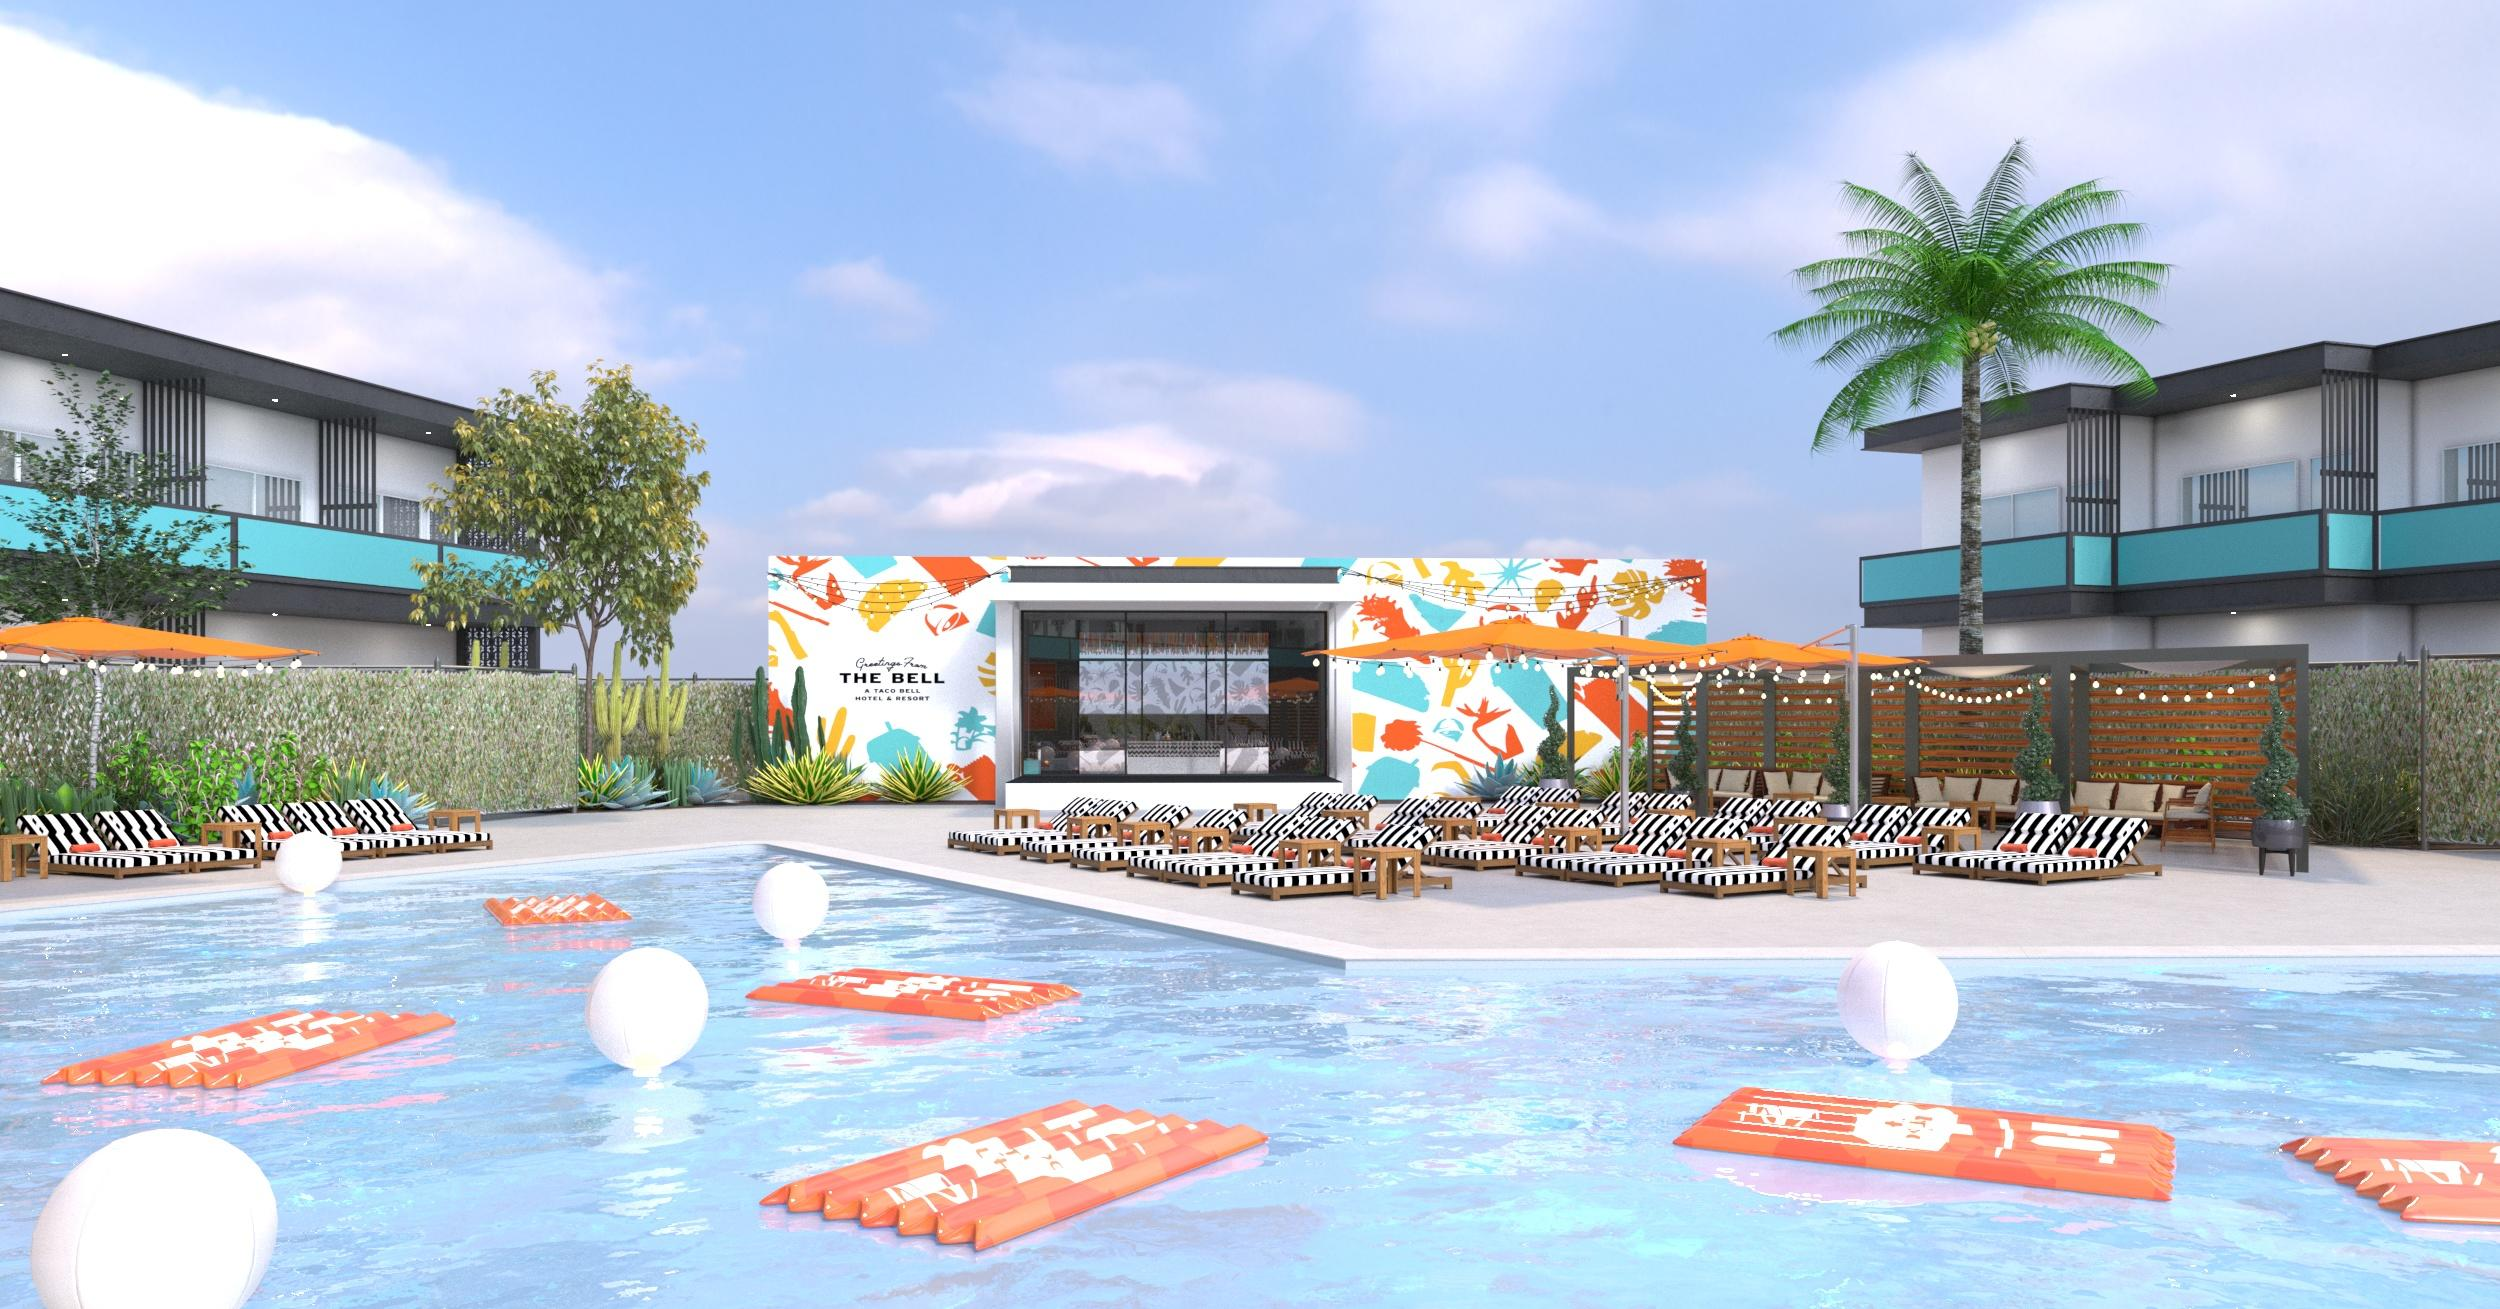 the-bell-a-taco-bell-hotel-resort-pool-view